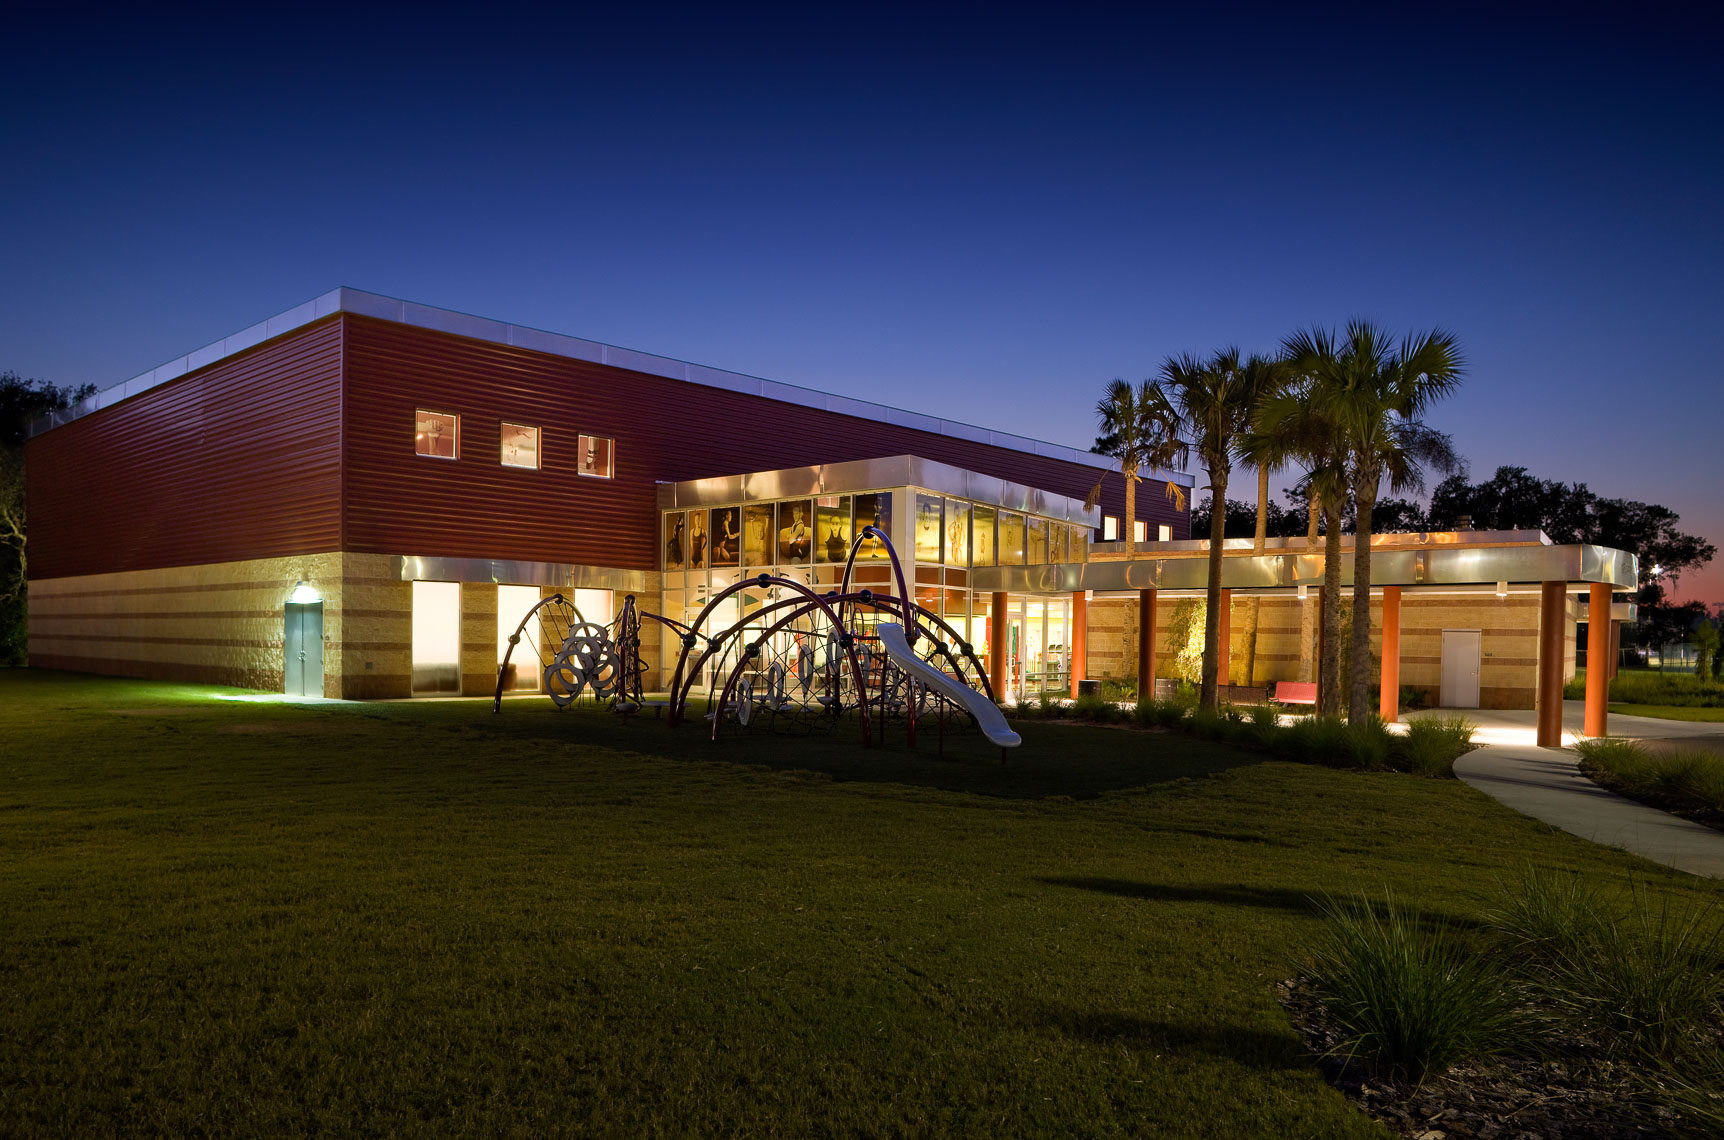 New Tampa Recreation Center - Mark Borosch Photography - Tampa, FL